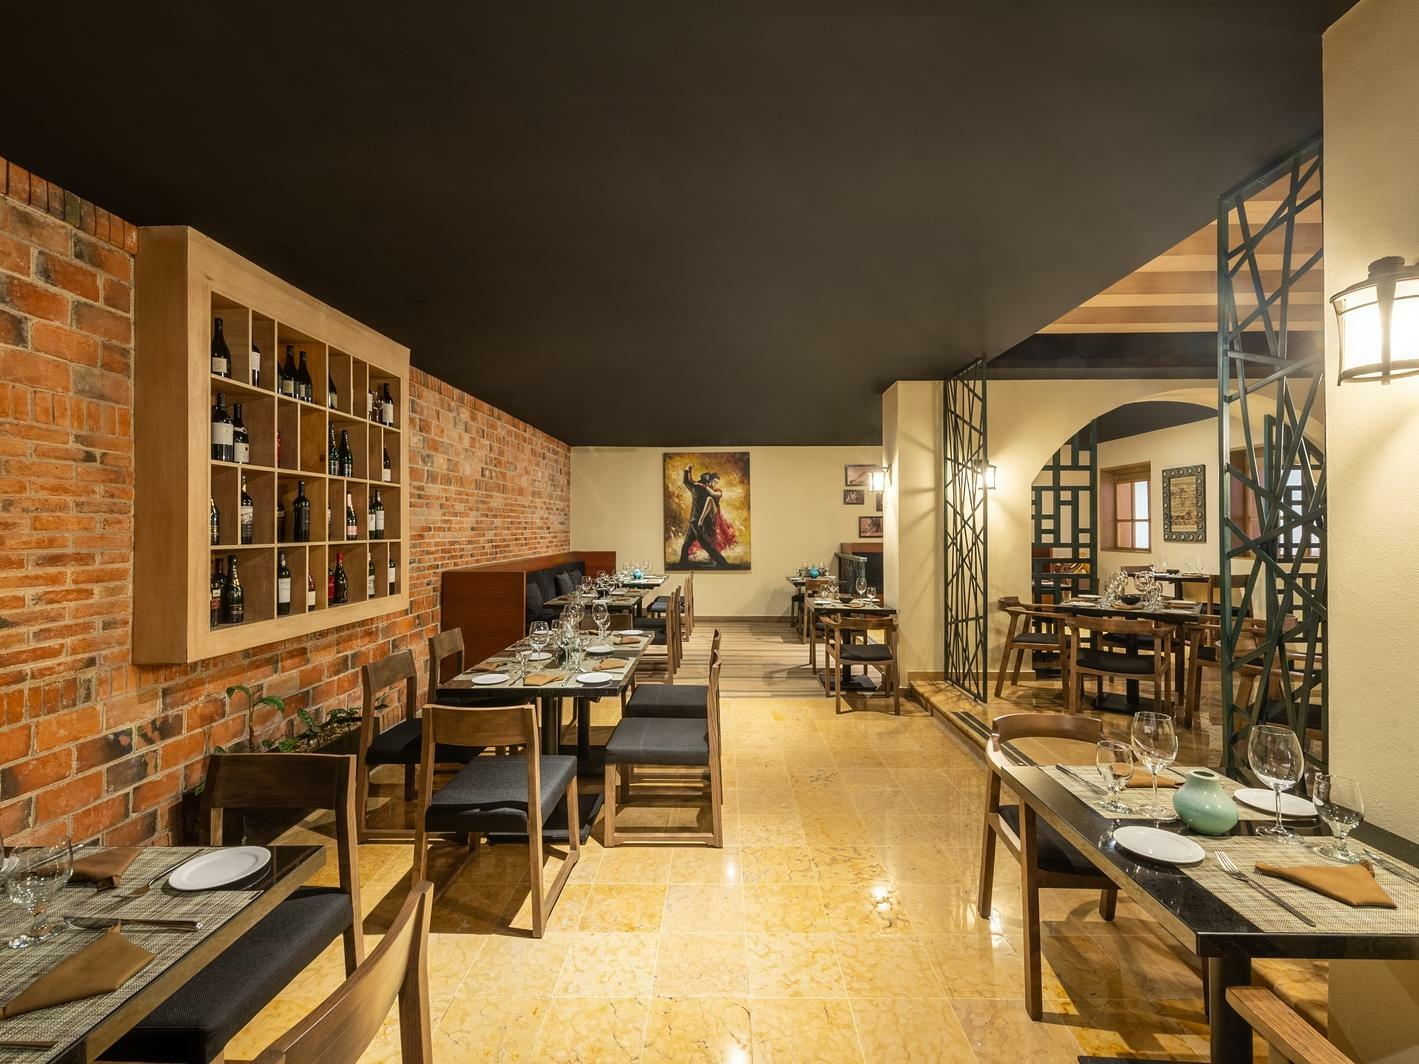 restauant dining room with brick wall